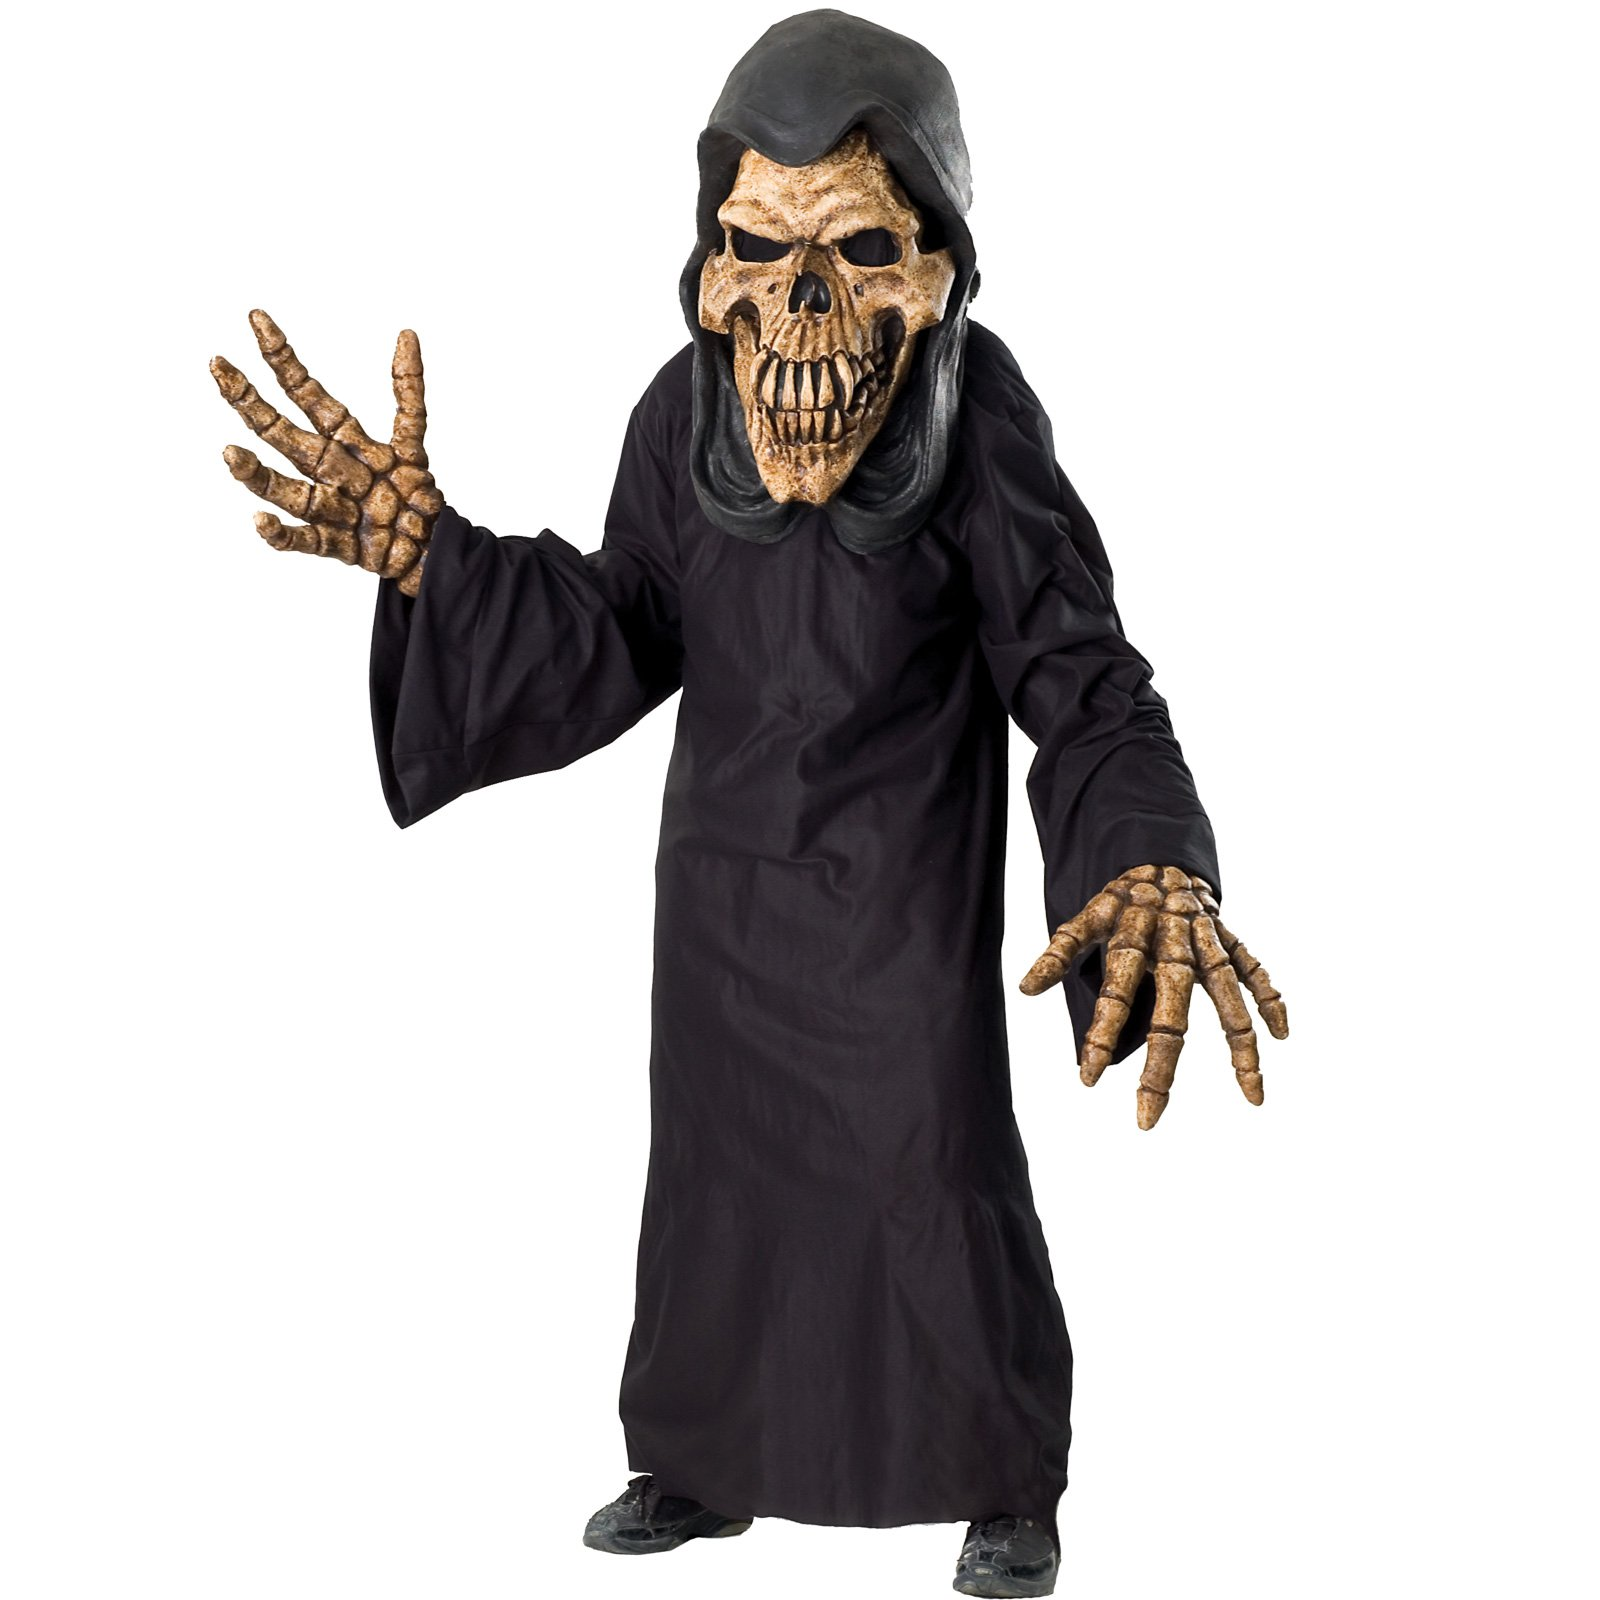 Grim Reaper Creature Reacher Adult